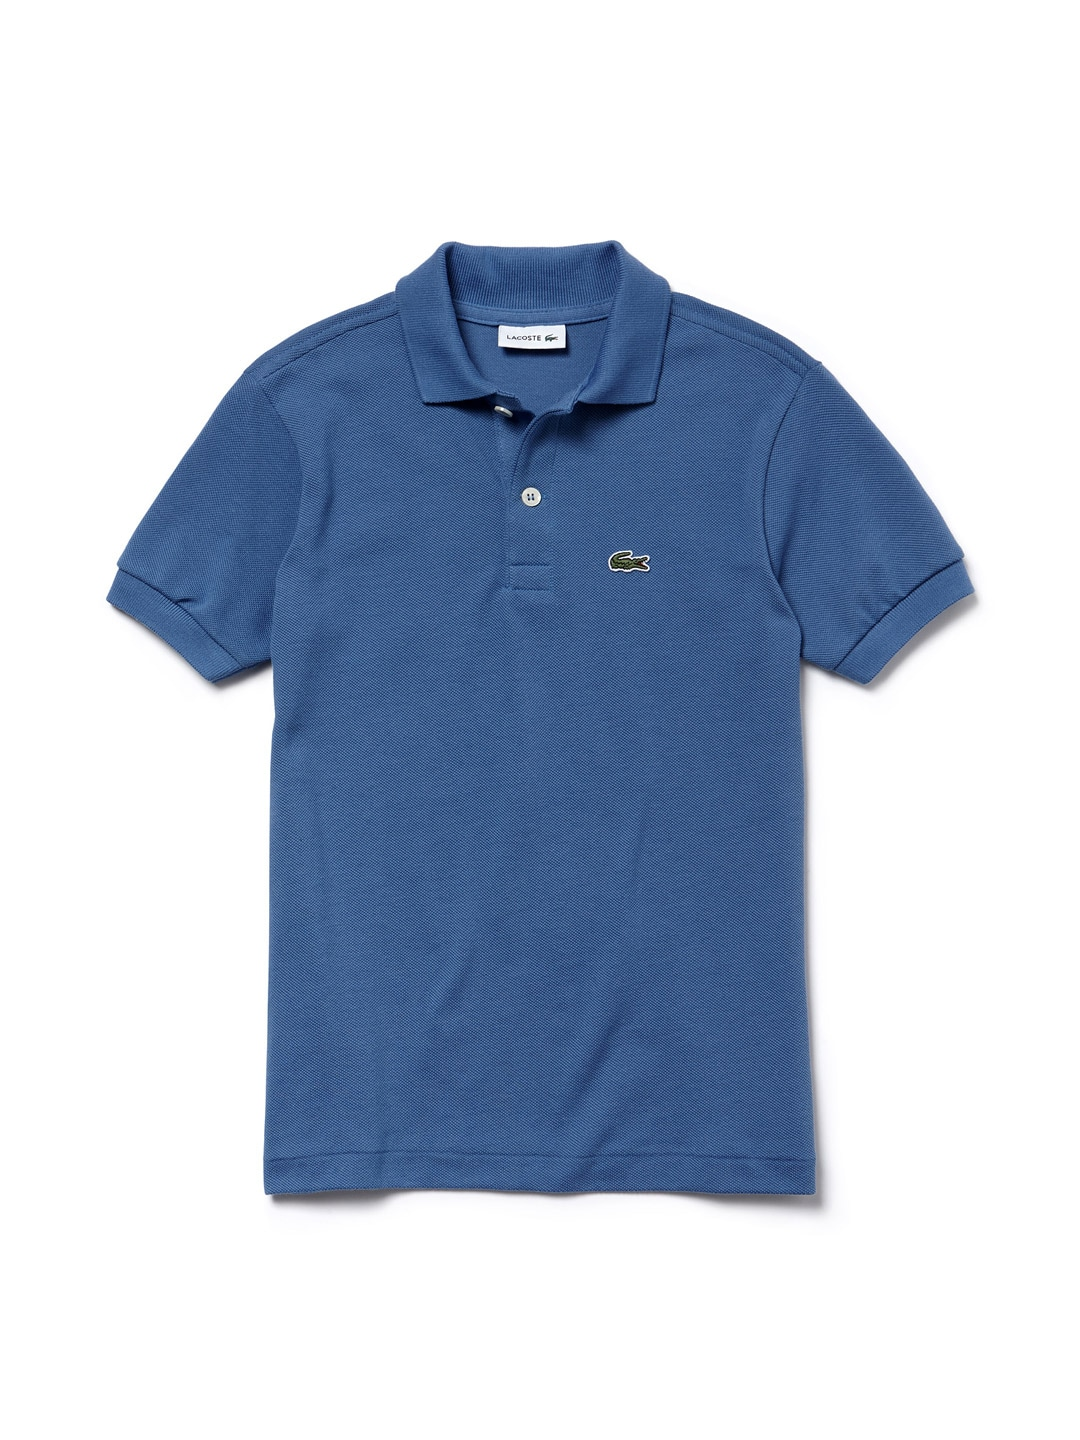 Lacoste - Buy Clothing   Accessories from Lacoste Store  6345f675e094